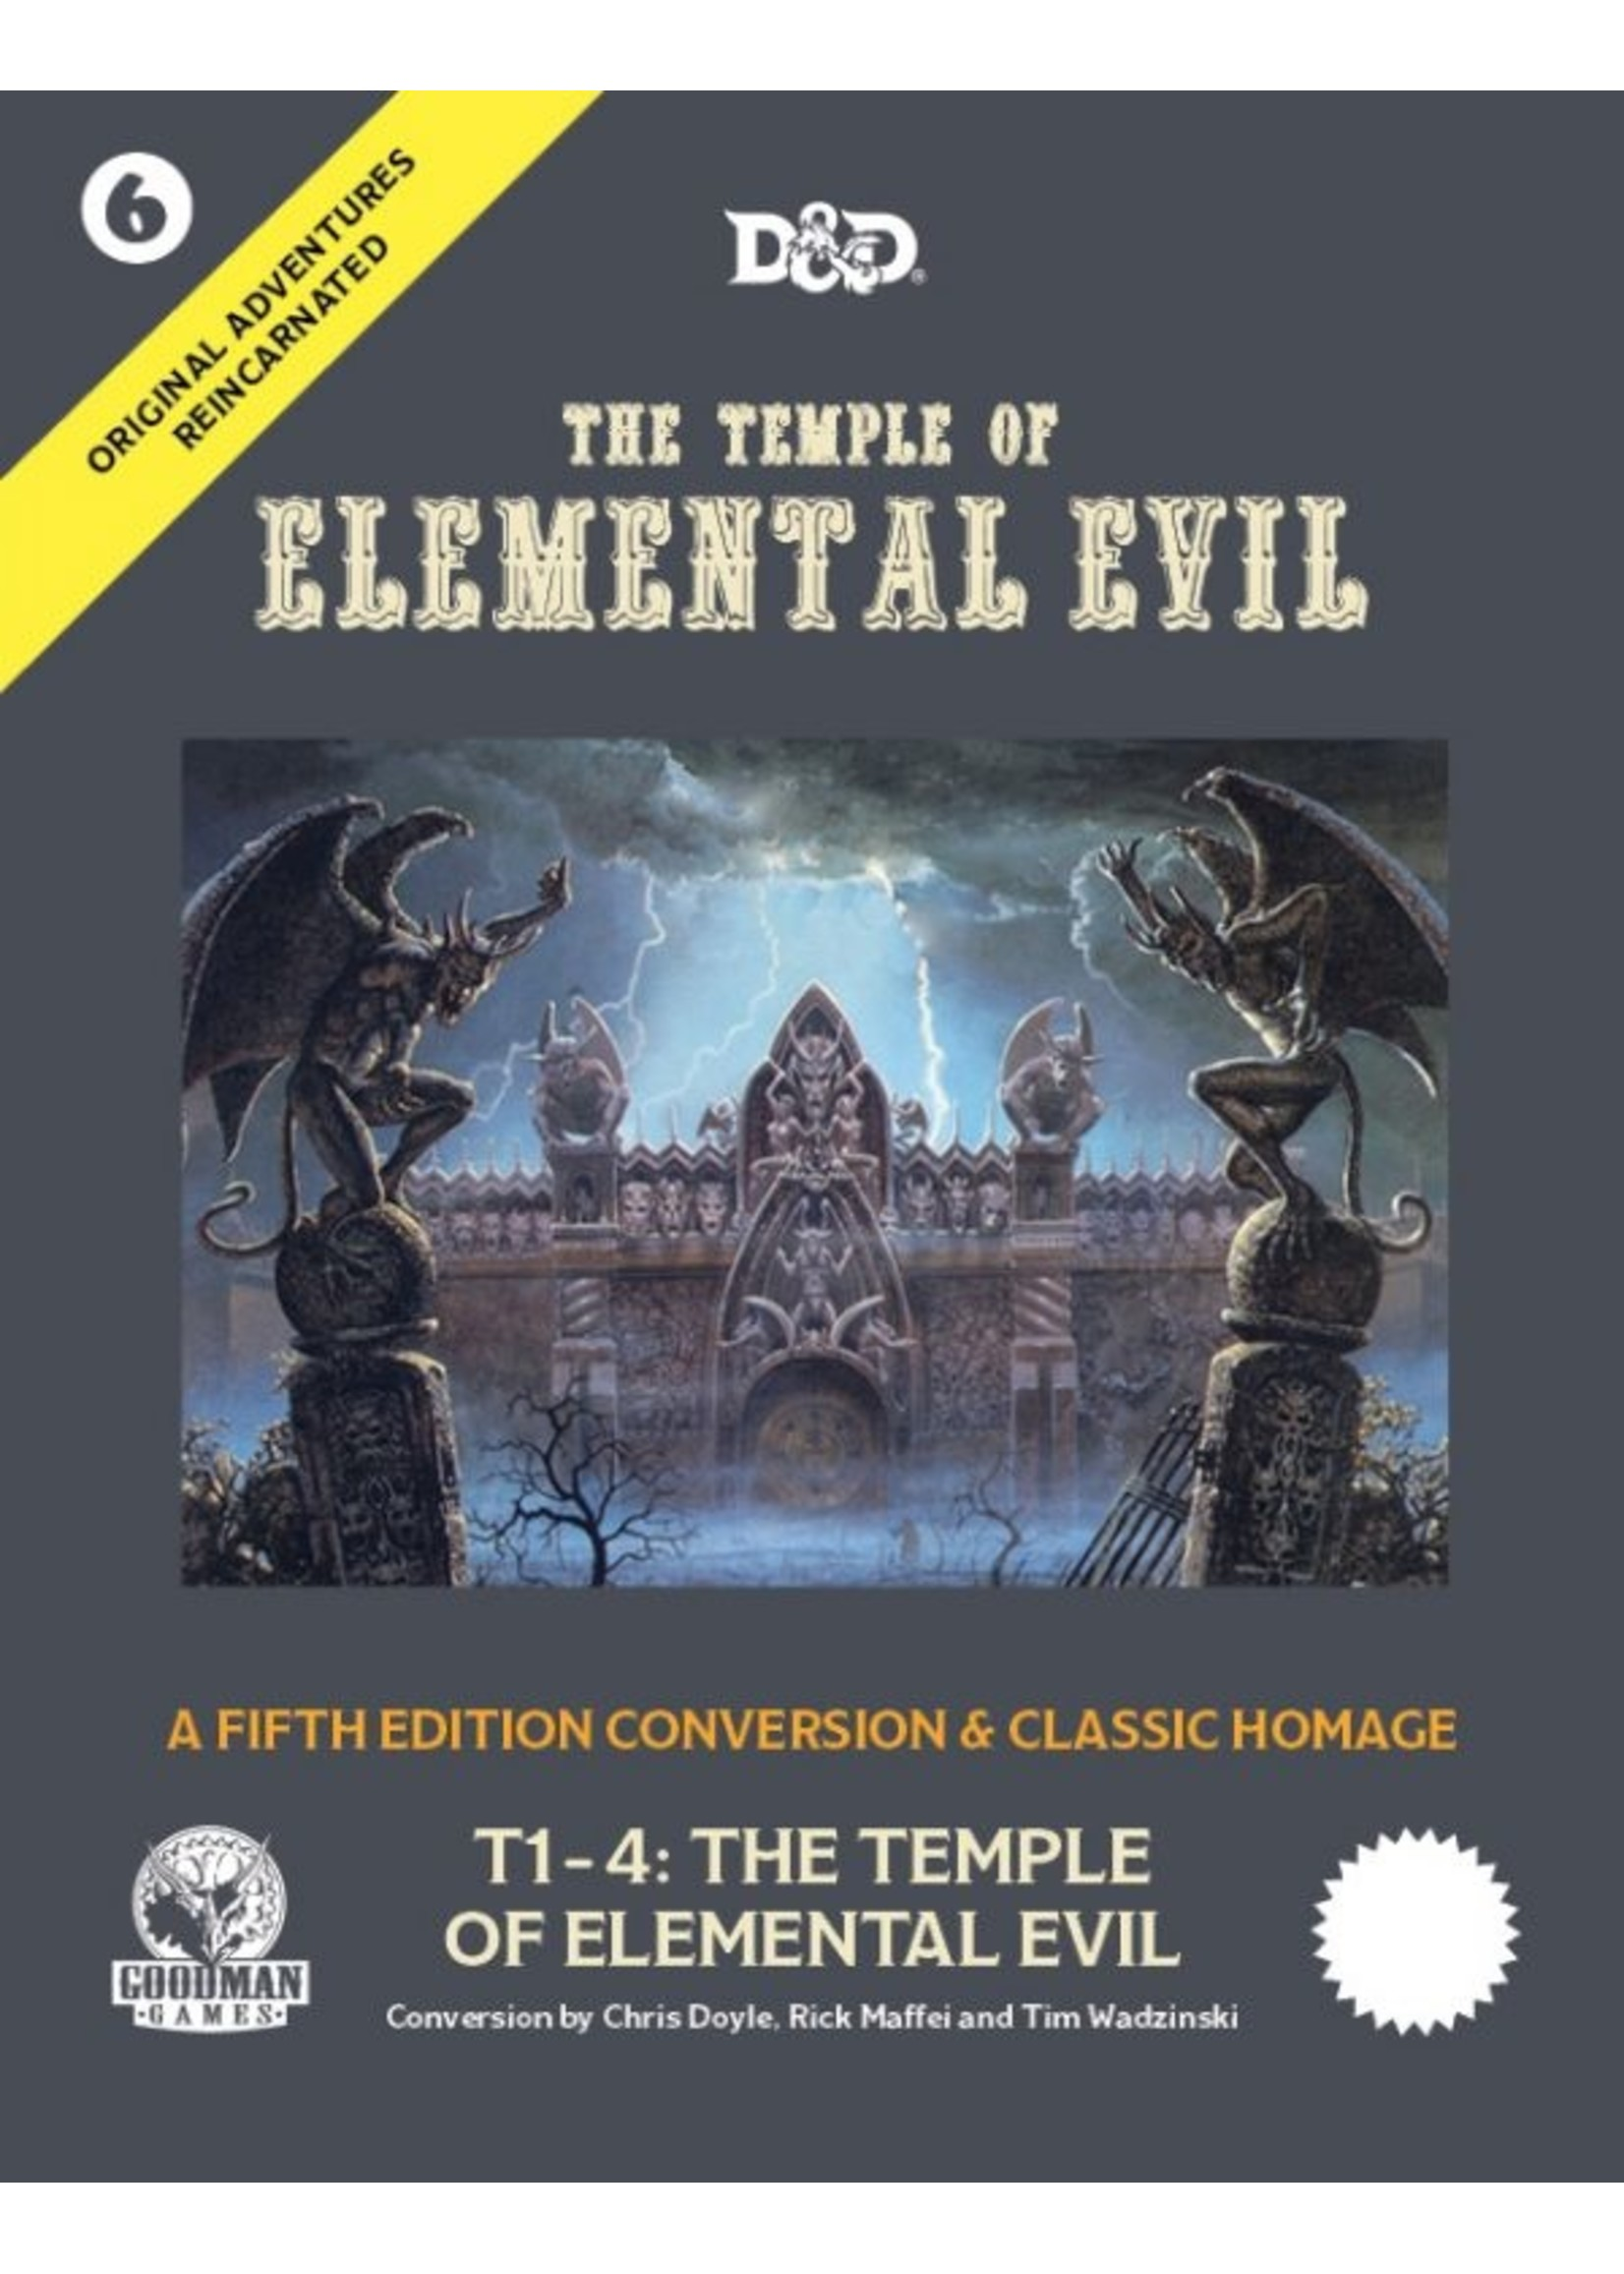 Original Adventures Reincarnated #6: The Temple of Elemental Evil (Pre-Order)